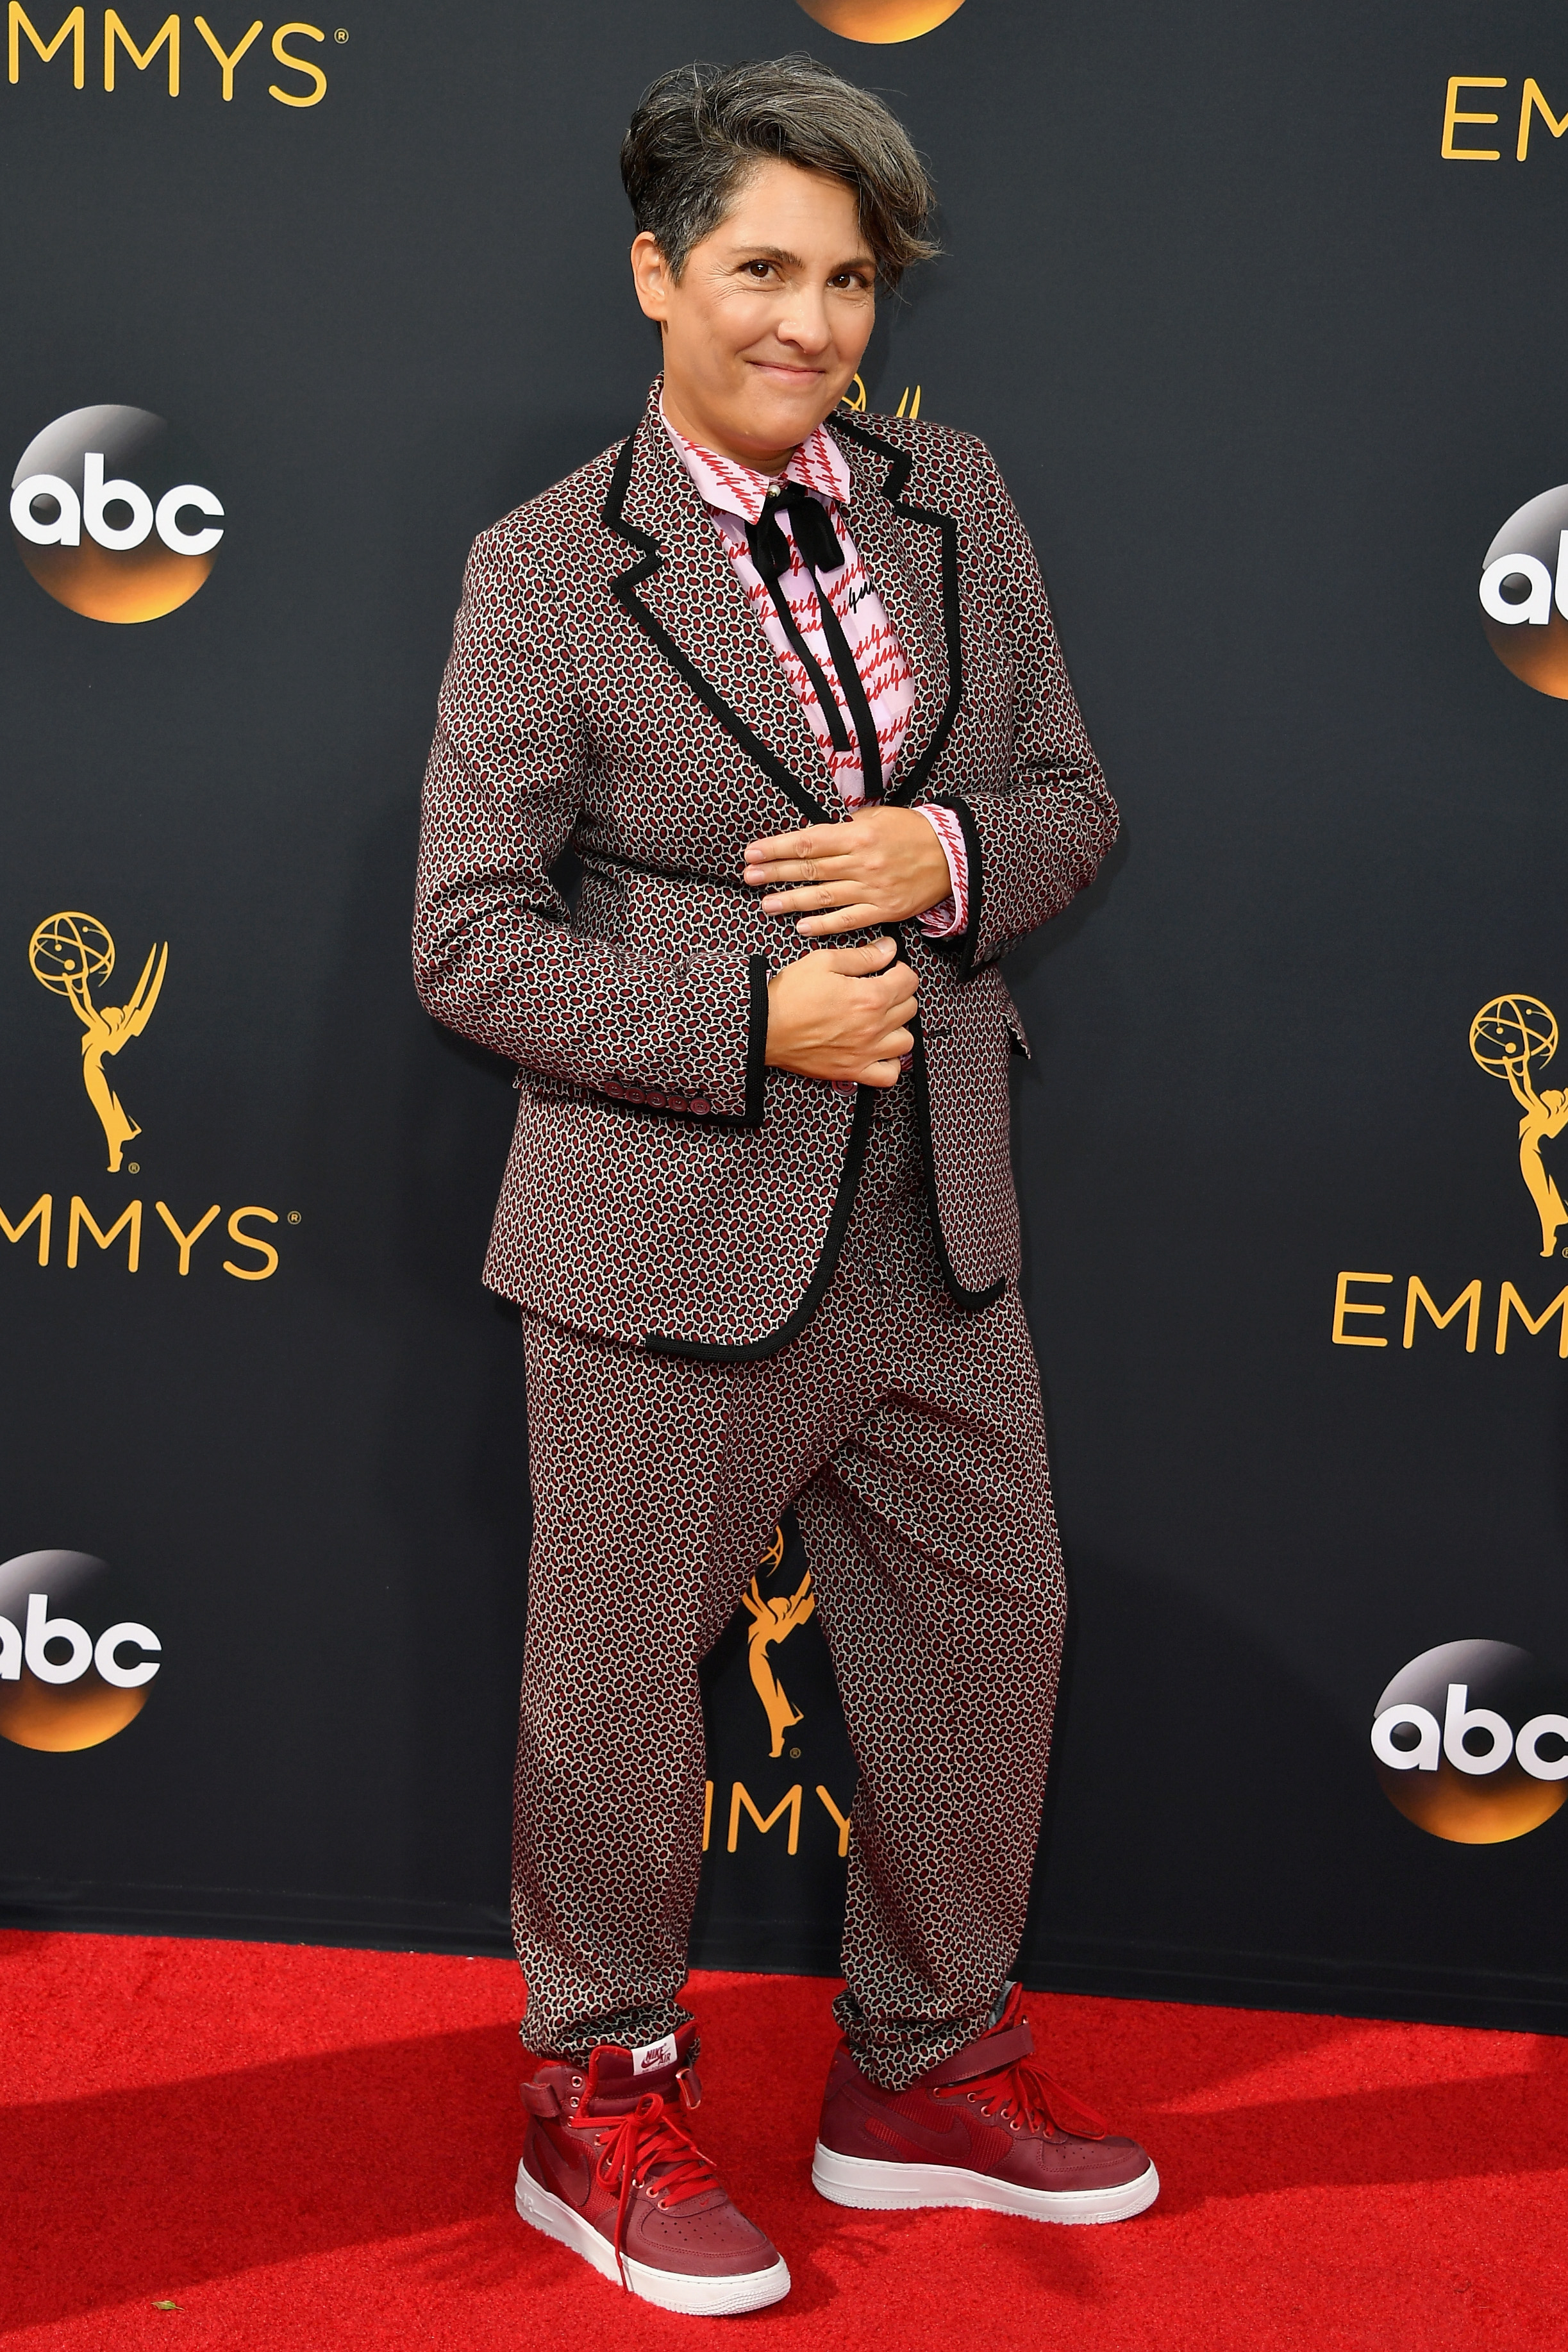 Jill Soloway arrives at the 68th Annual Primetime Emmy Awards at Microsoft Theater on Sept. 18, 2016 in Los Angeles.